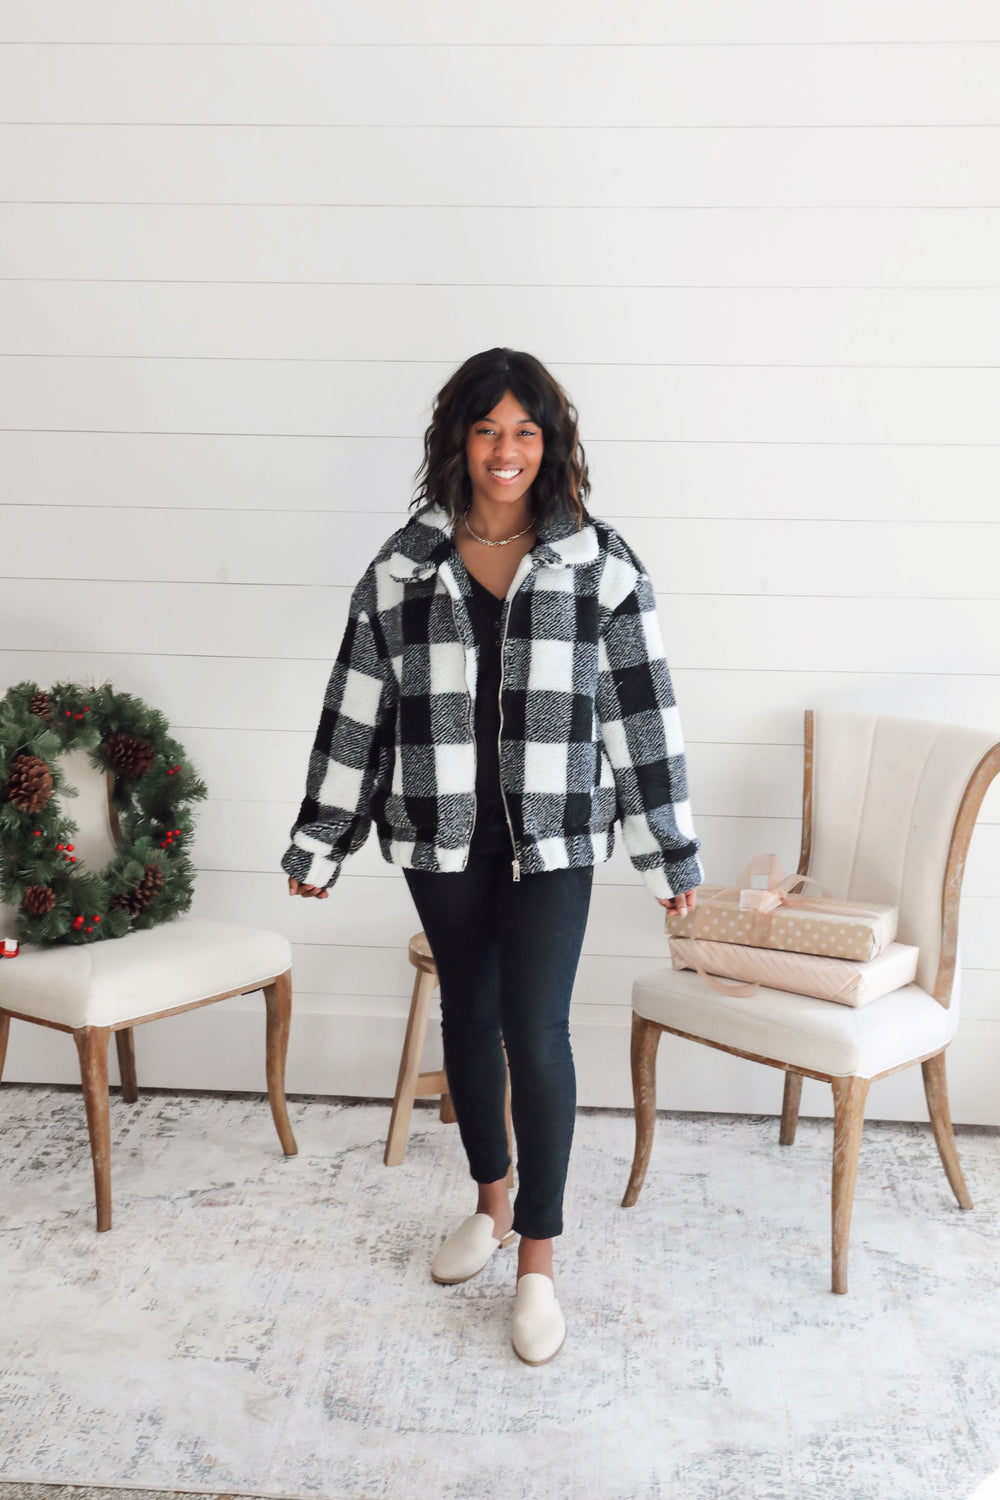 RESTOCK Buffalo Plaid Teddy Coat